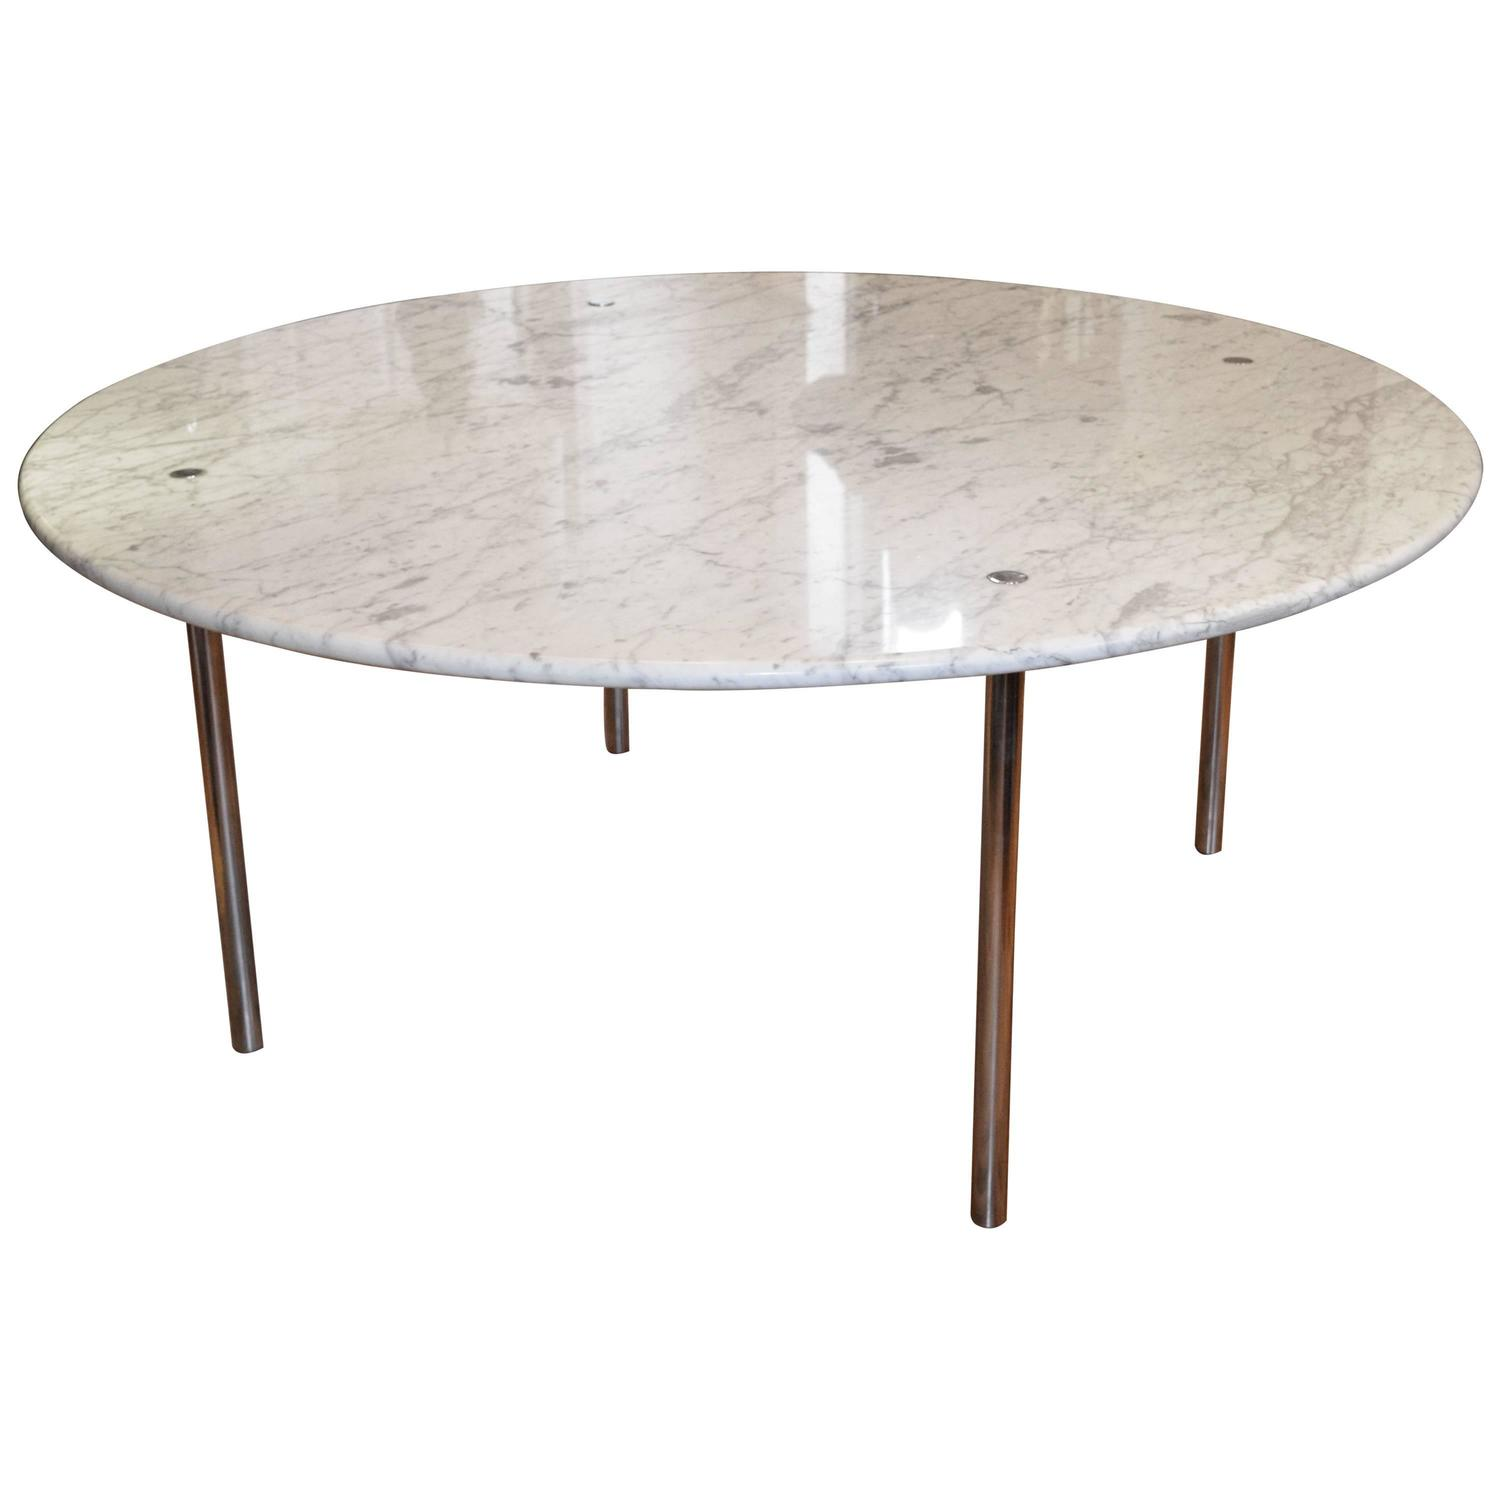 round marble table and chairs rattan furniture 2 monumental dining by katavolos littell